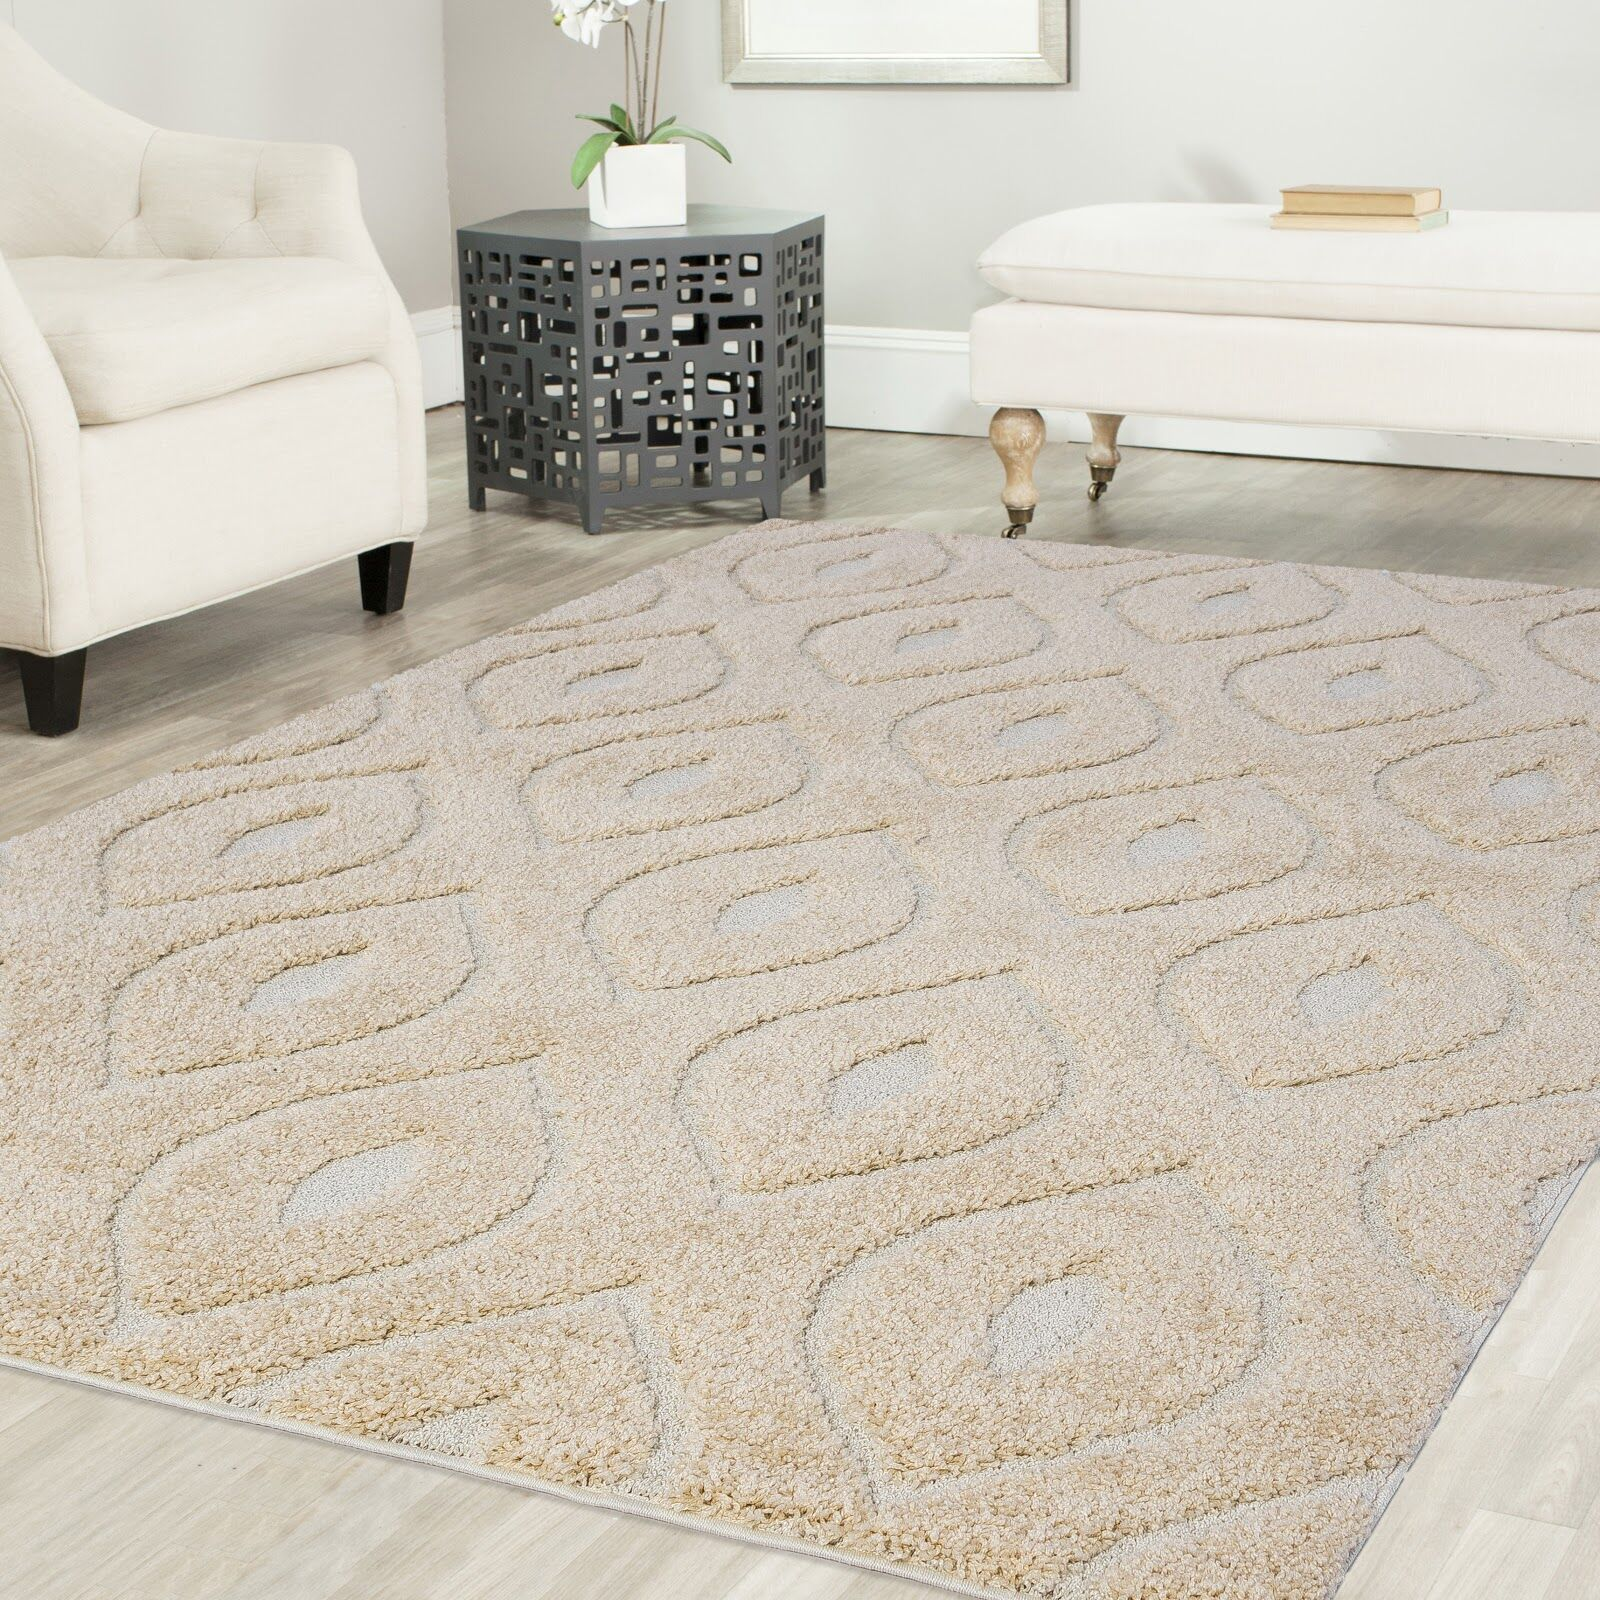 Ruiz Glam Shag Beige/White Area Rug Rug Size: Rectangle 8' x 10'